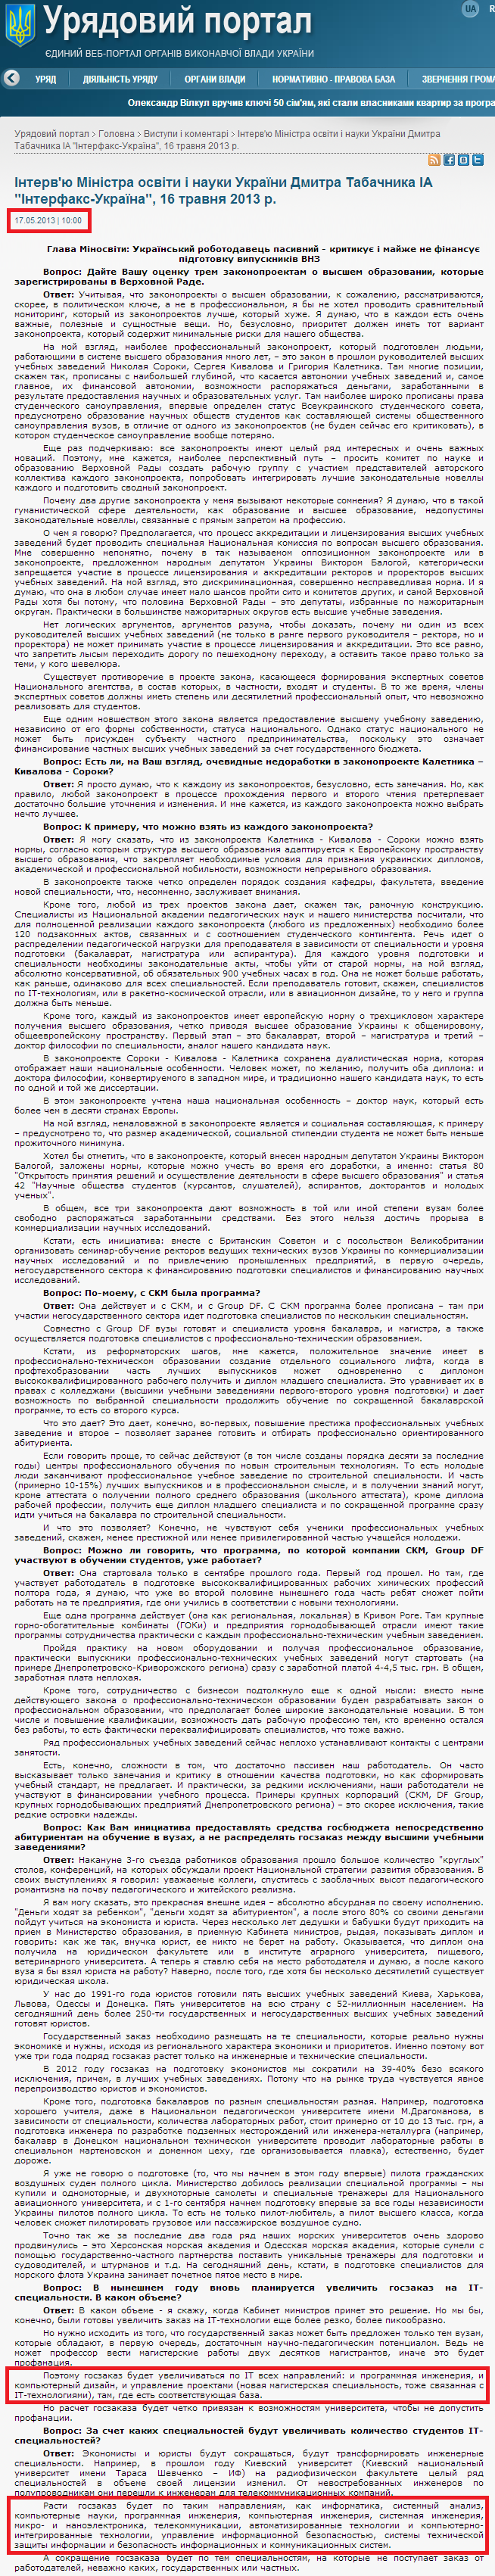 http://www.kmu.gov.ua/control/uk/publish/article?art_id=246337728&cat_id=244276512